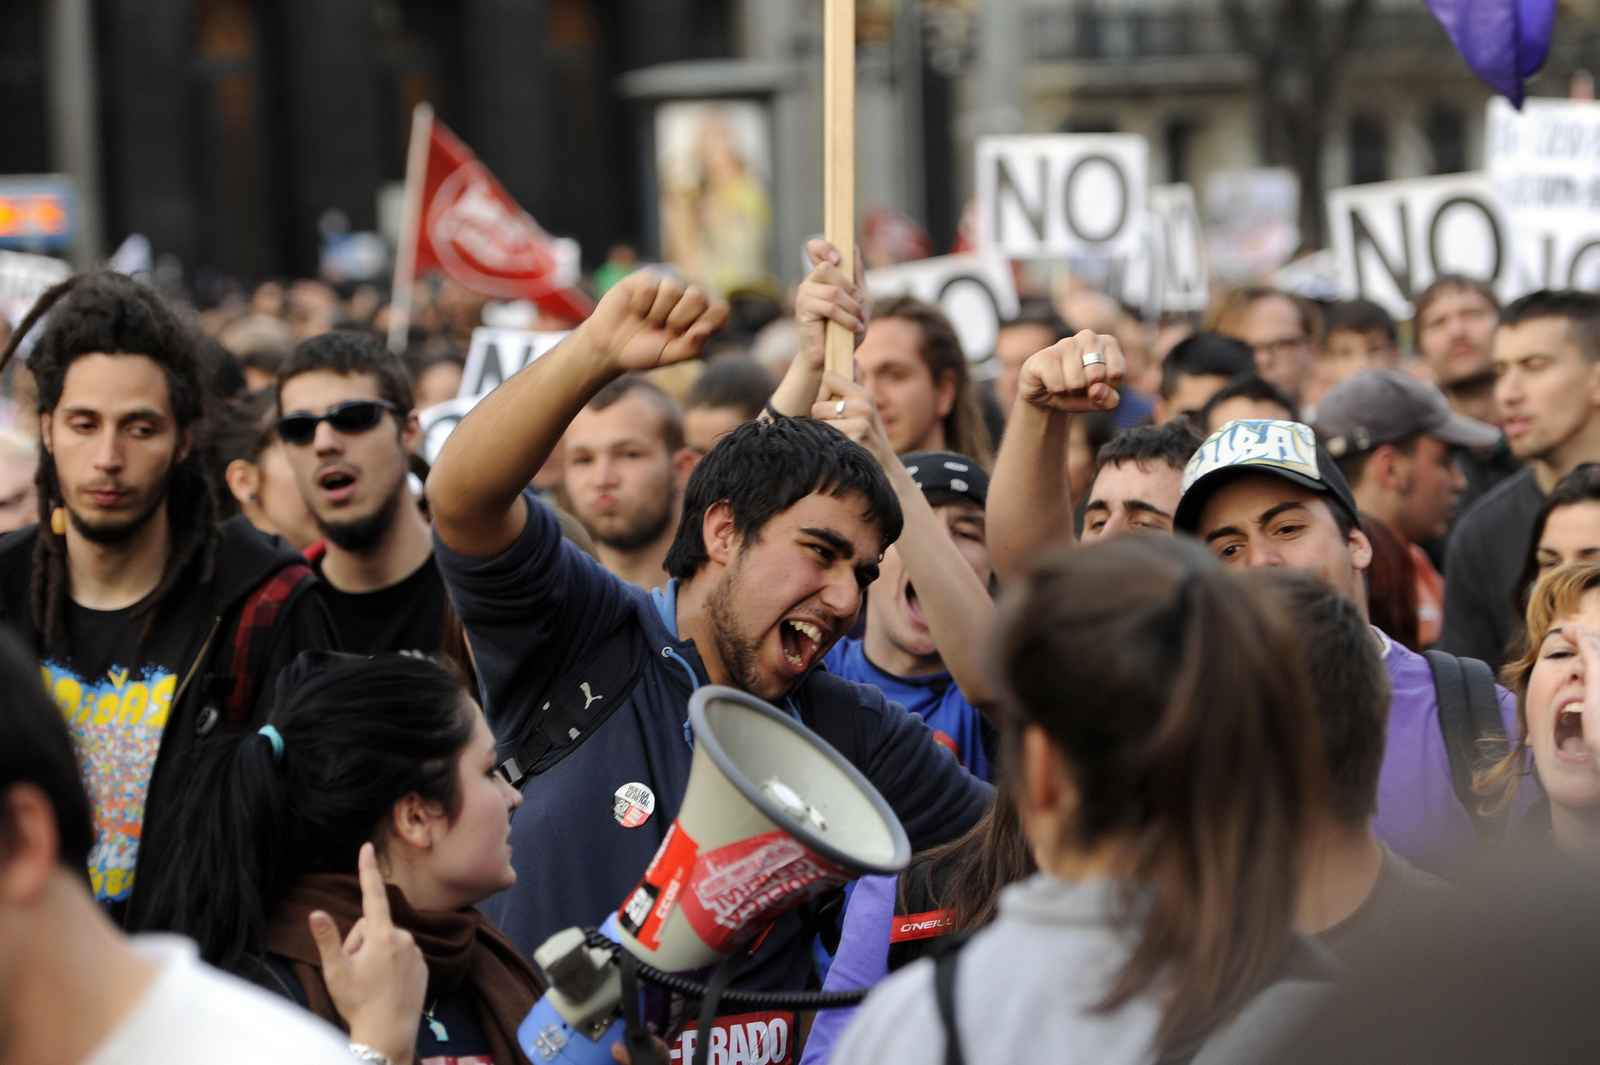 Youngsters shout slogans during a demons